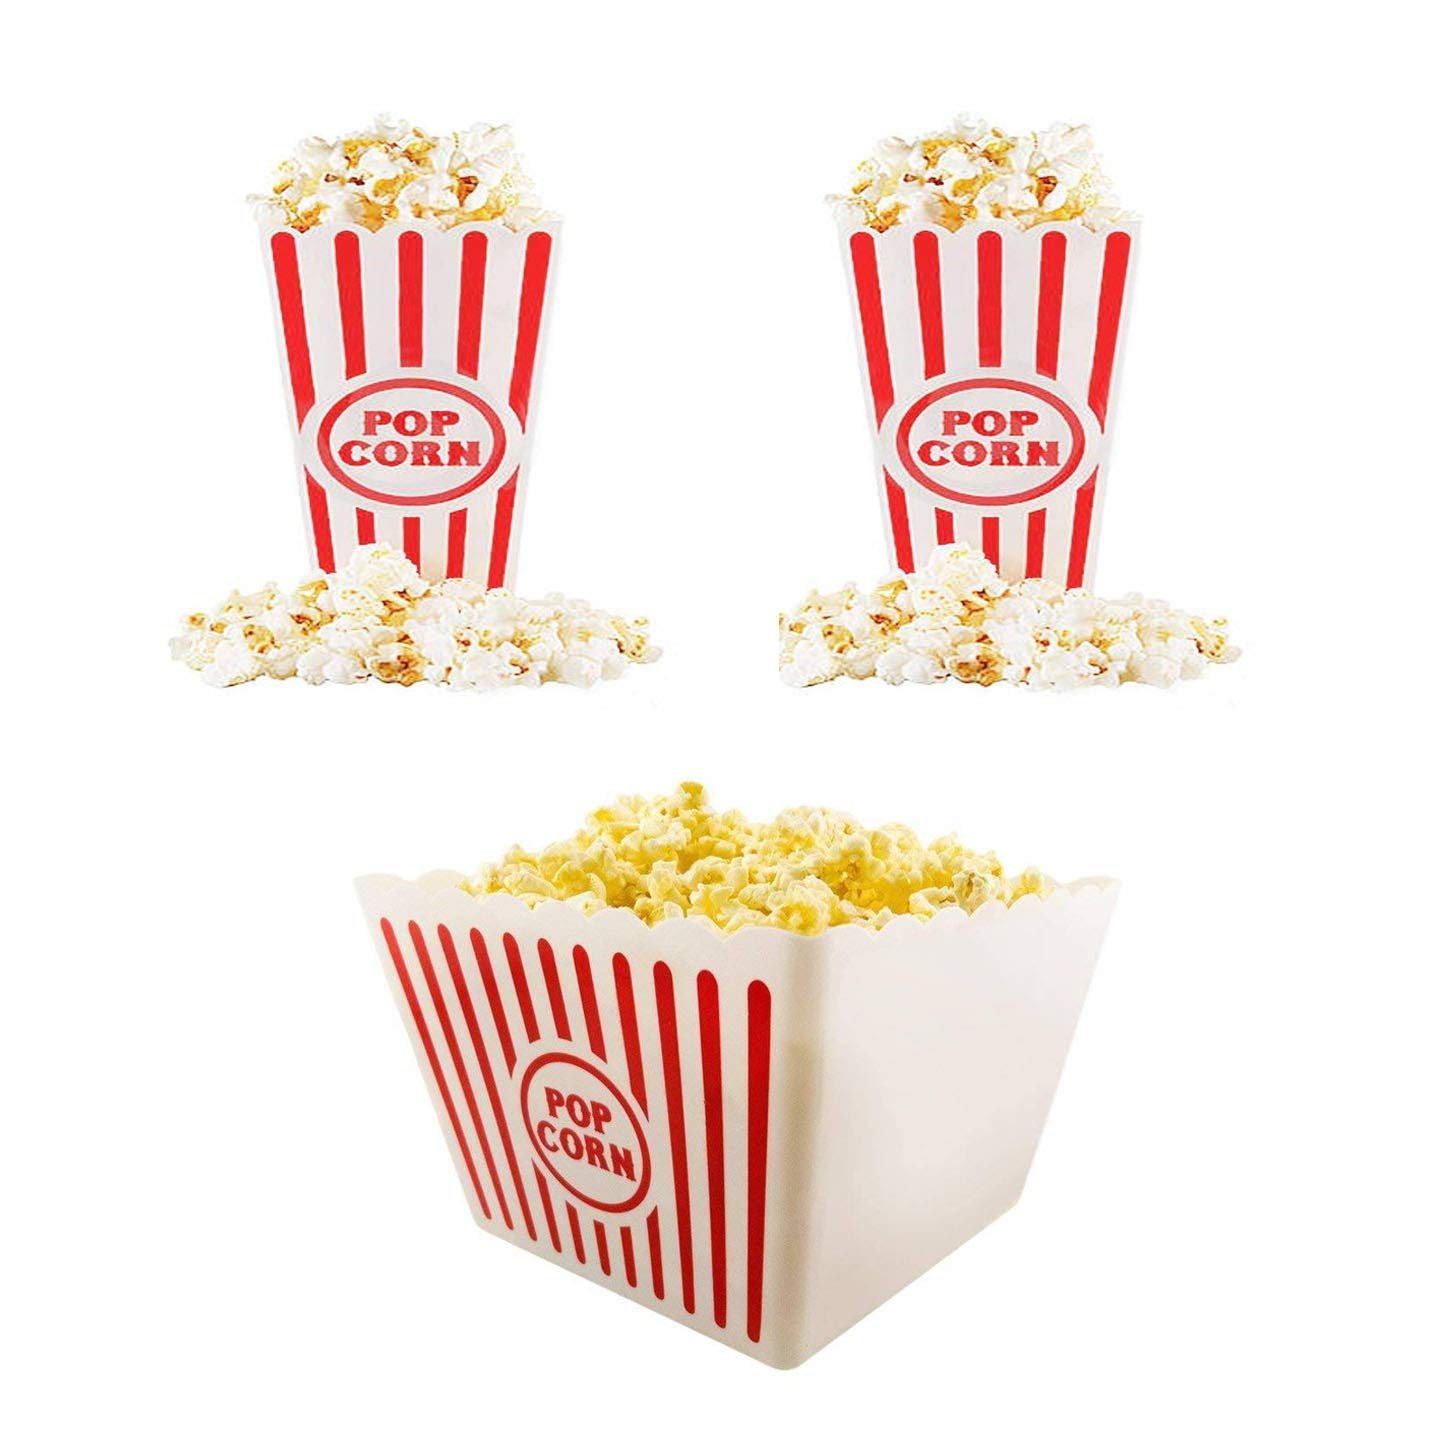 Plastic Red & White Striped Classic Popcorn Containers for Movie Night Bundle 8 1/2'' Square x 7'' Deep & 6.11'' Tall x 3.8'' Square (3)